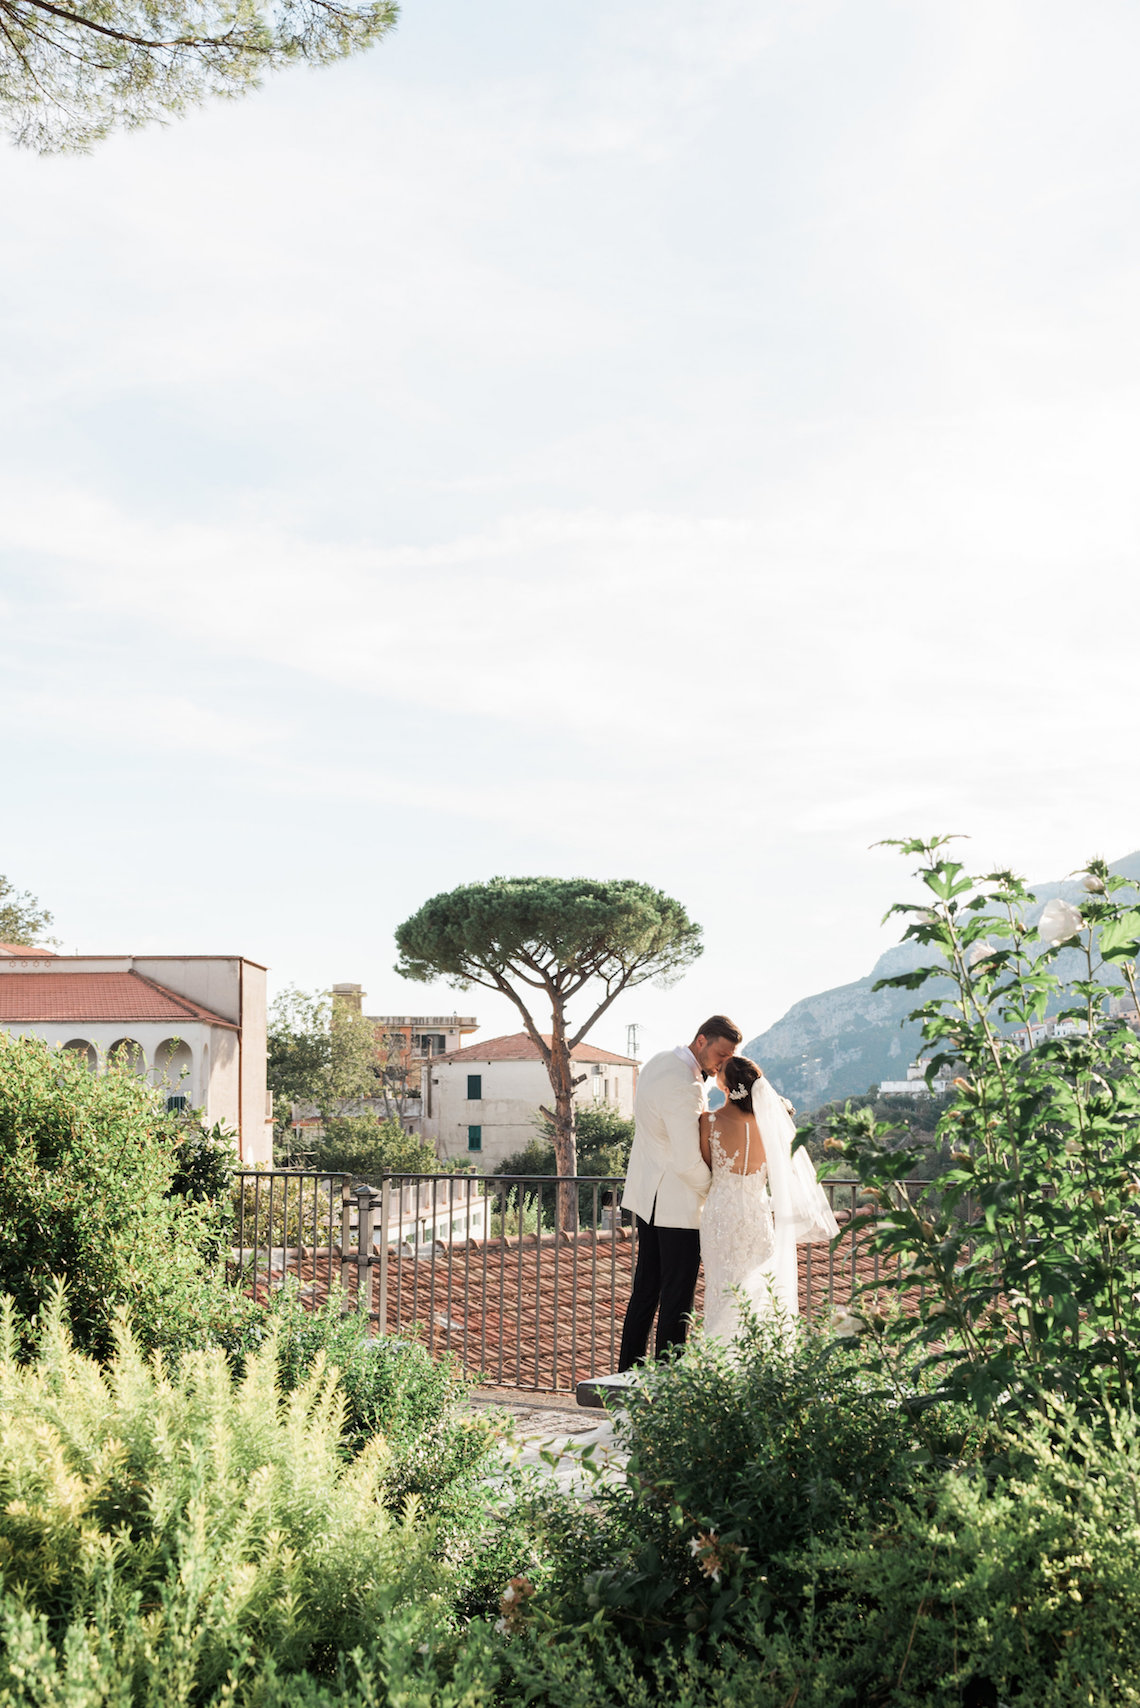 The Ultimate Dream Villa Wedding On The Amalfi Coast | Lace and Luce 23